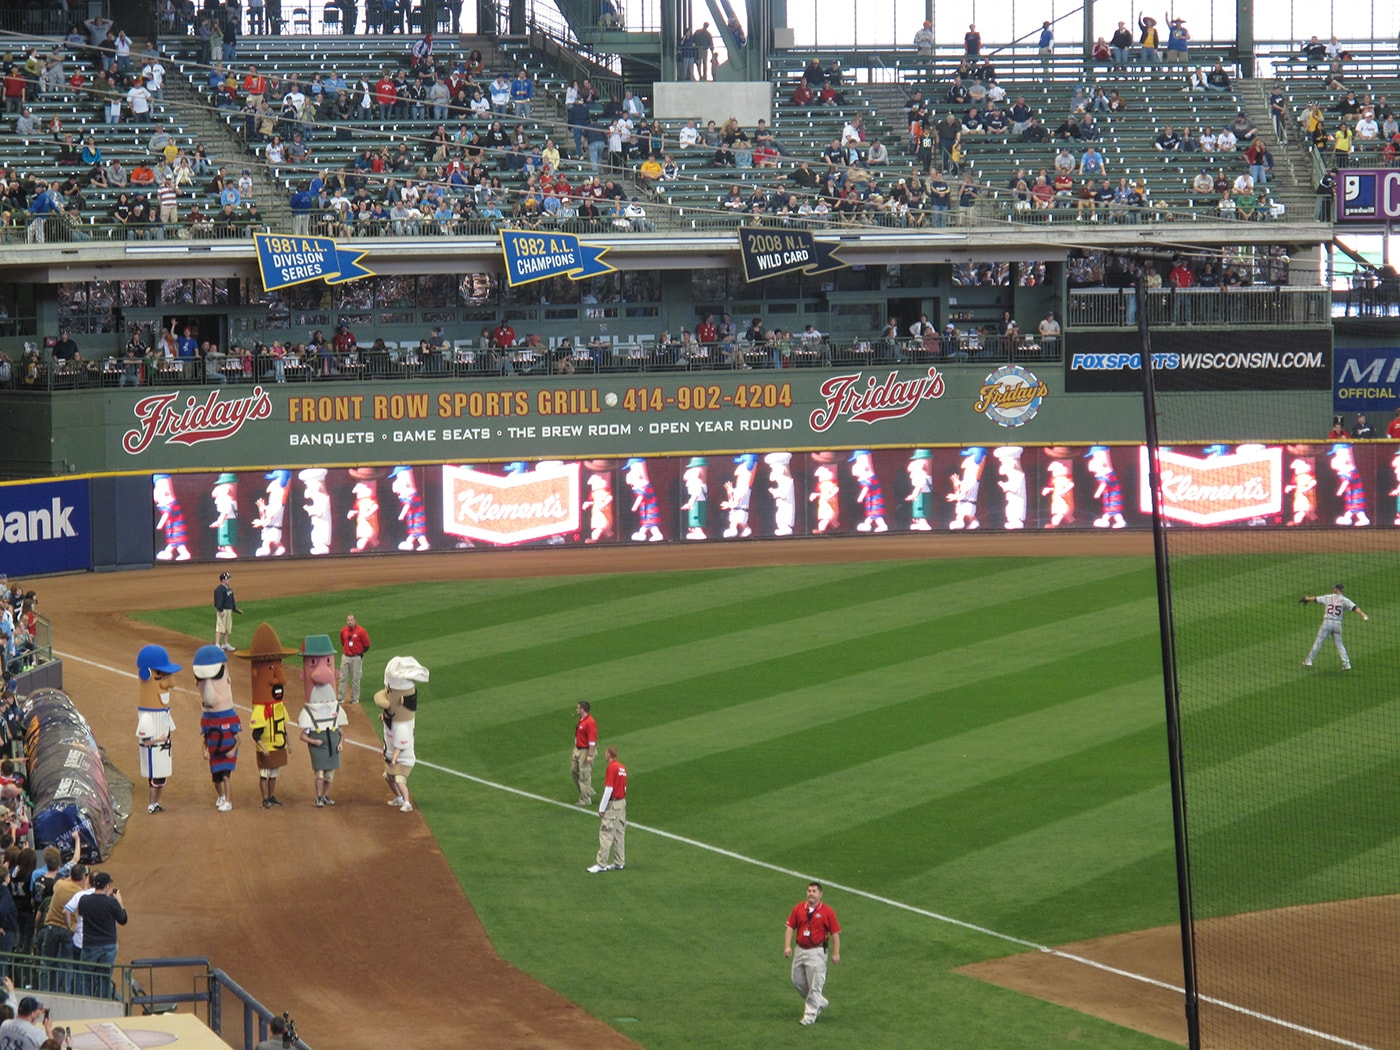 Sausage race at a Brewers game at Millers Park in Milwaukee.